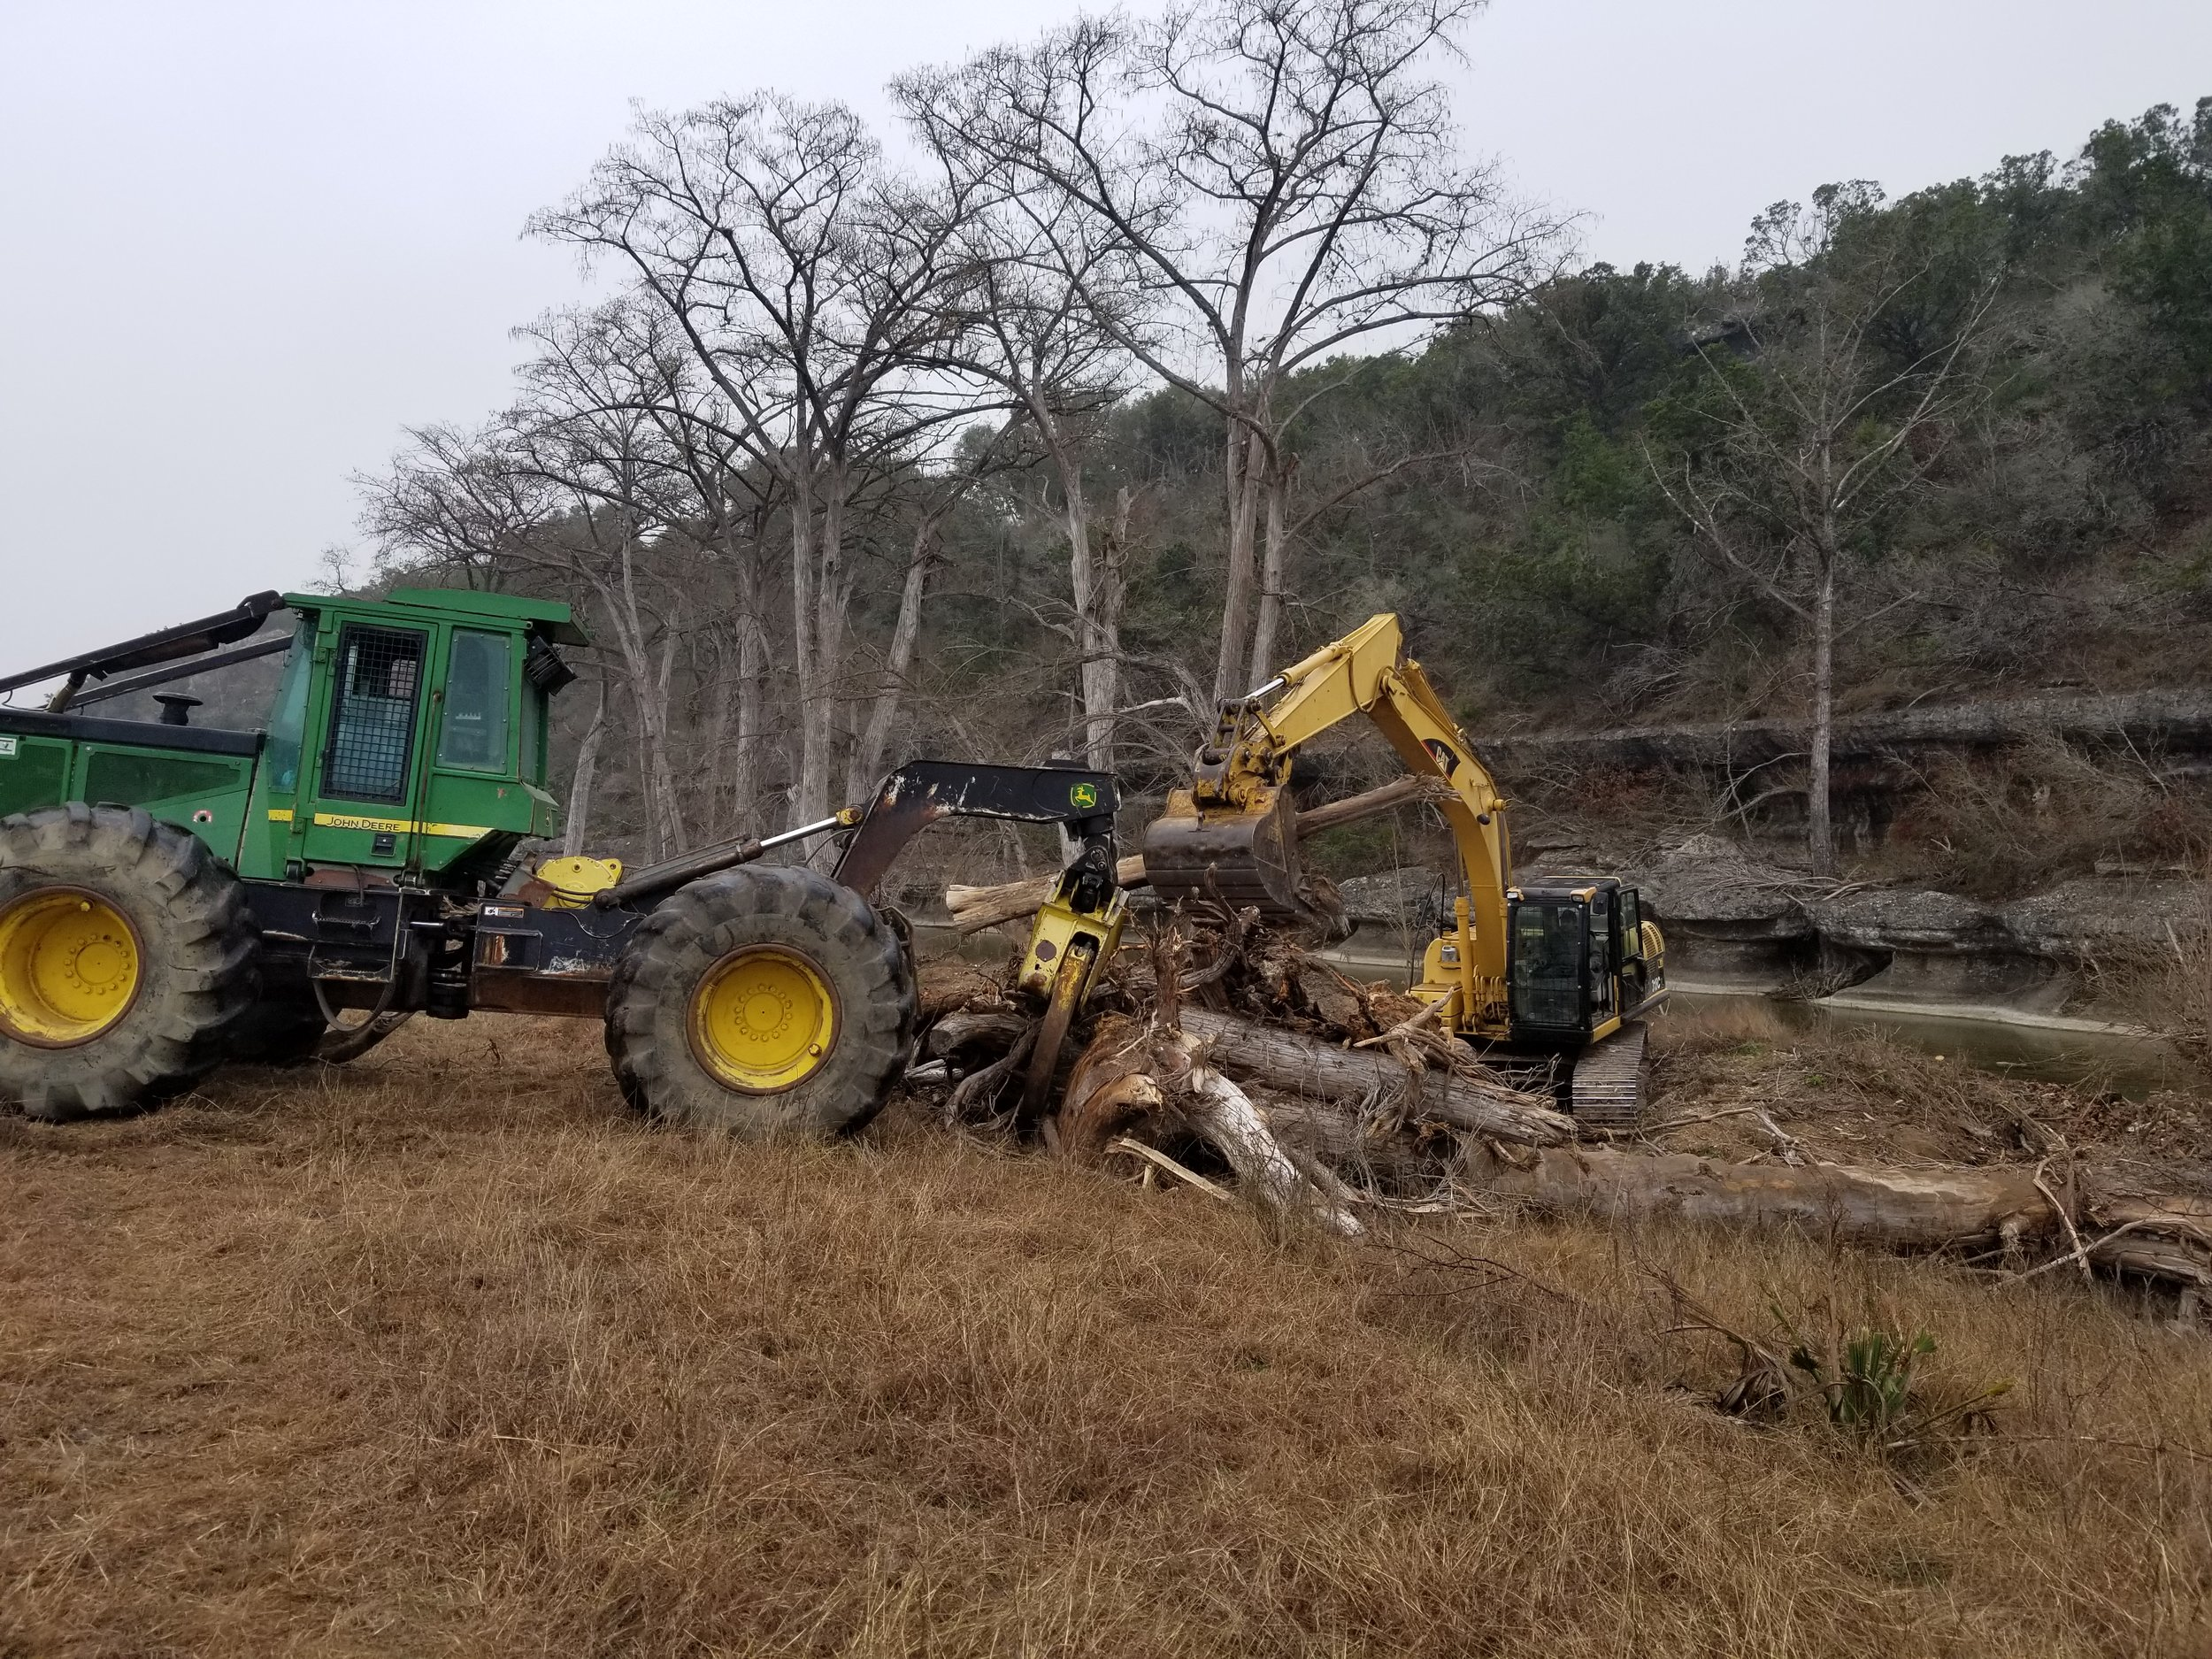 Timber services - Cahaba has a longstanding reputation in forestry, ever since our founder Buddy Fuzzell began cruising timber in 1961. Today, we are involved in land acquisition, timber cruising, logging, and stump extraction/removal.